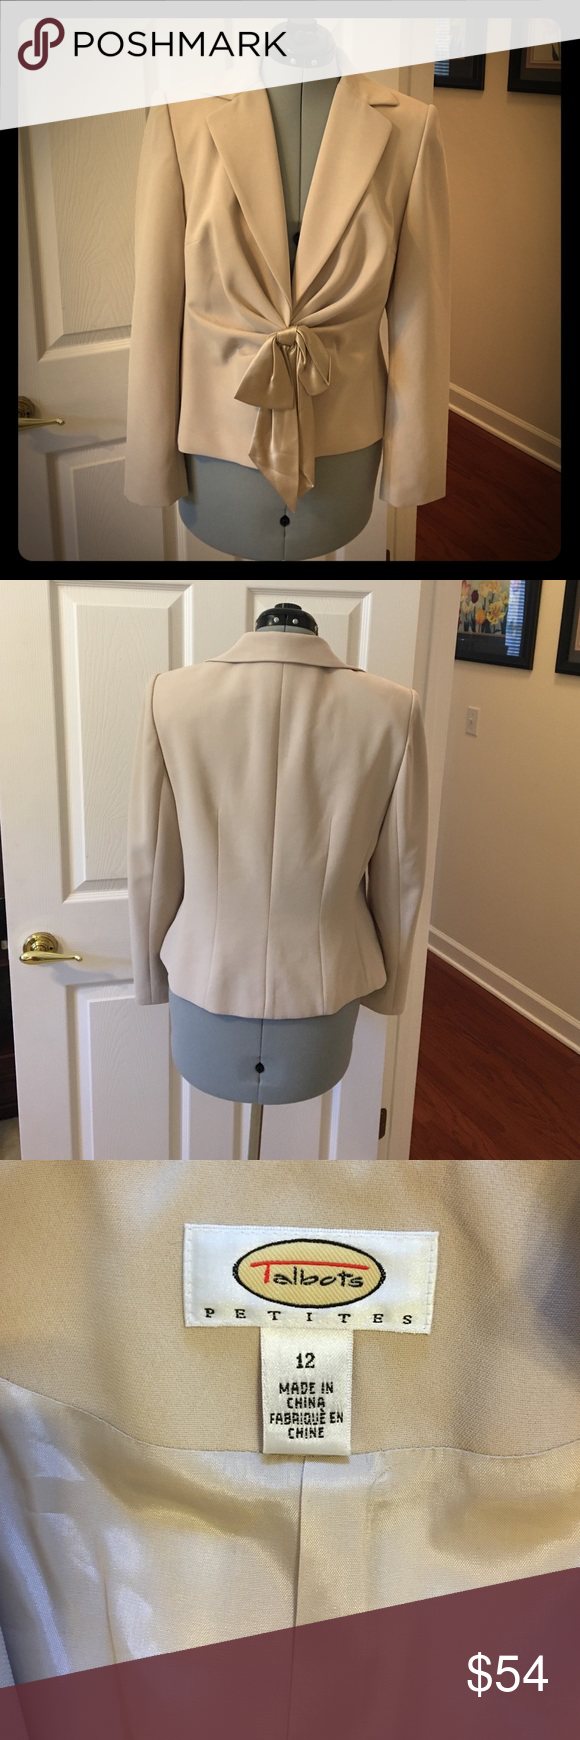 Talbots formal jacket Cream colored Talbots formal jacket. Silk bow snap in front, long sleeve, lined and good condition. Size 12 Talbots Jackets & Coats